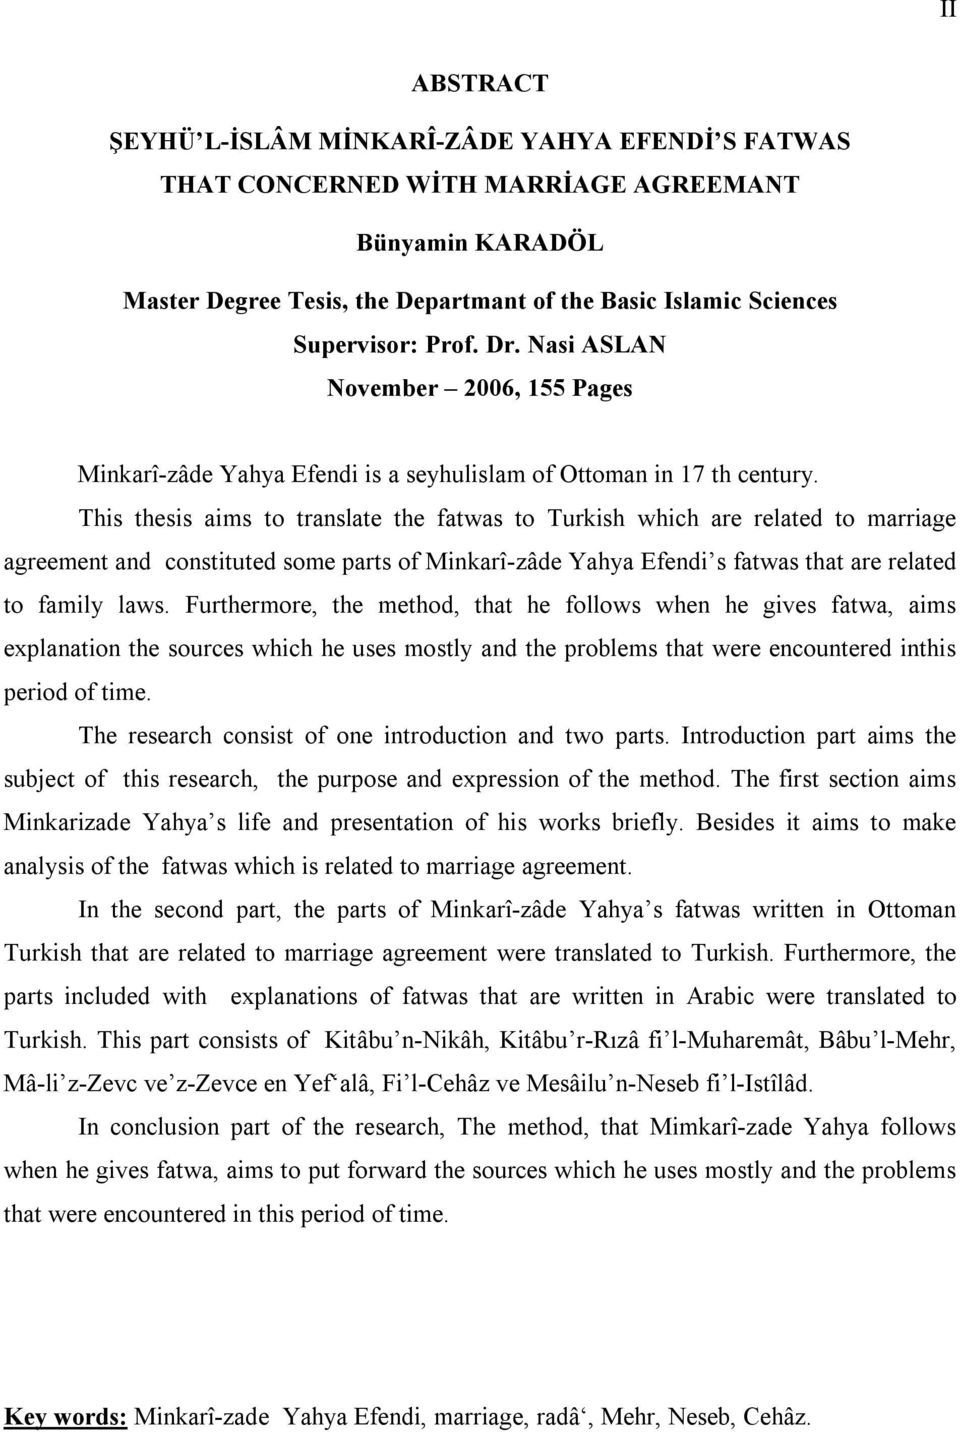 This thesis aims to translate the fatwas to Turkish which are related to marriage agreement and constituted some parts of Minkarî-zâde Yahya Efendi s fatwas that are related to family laws.